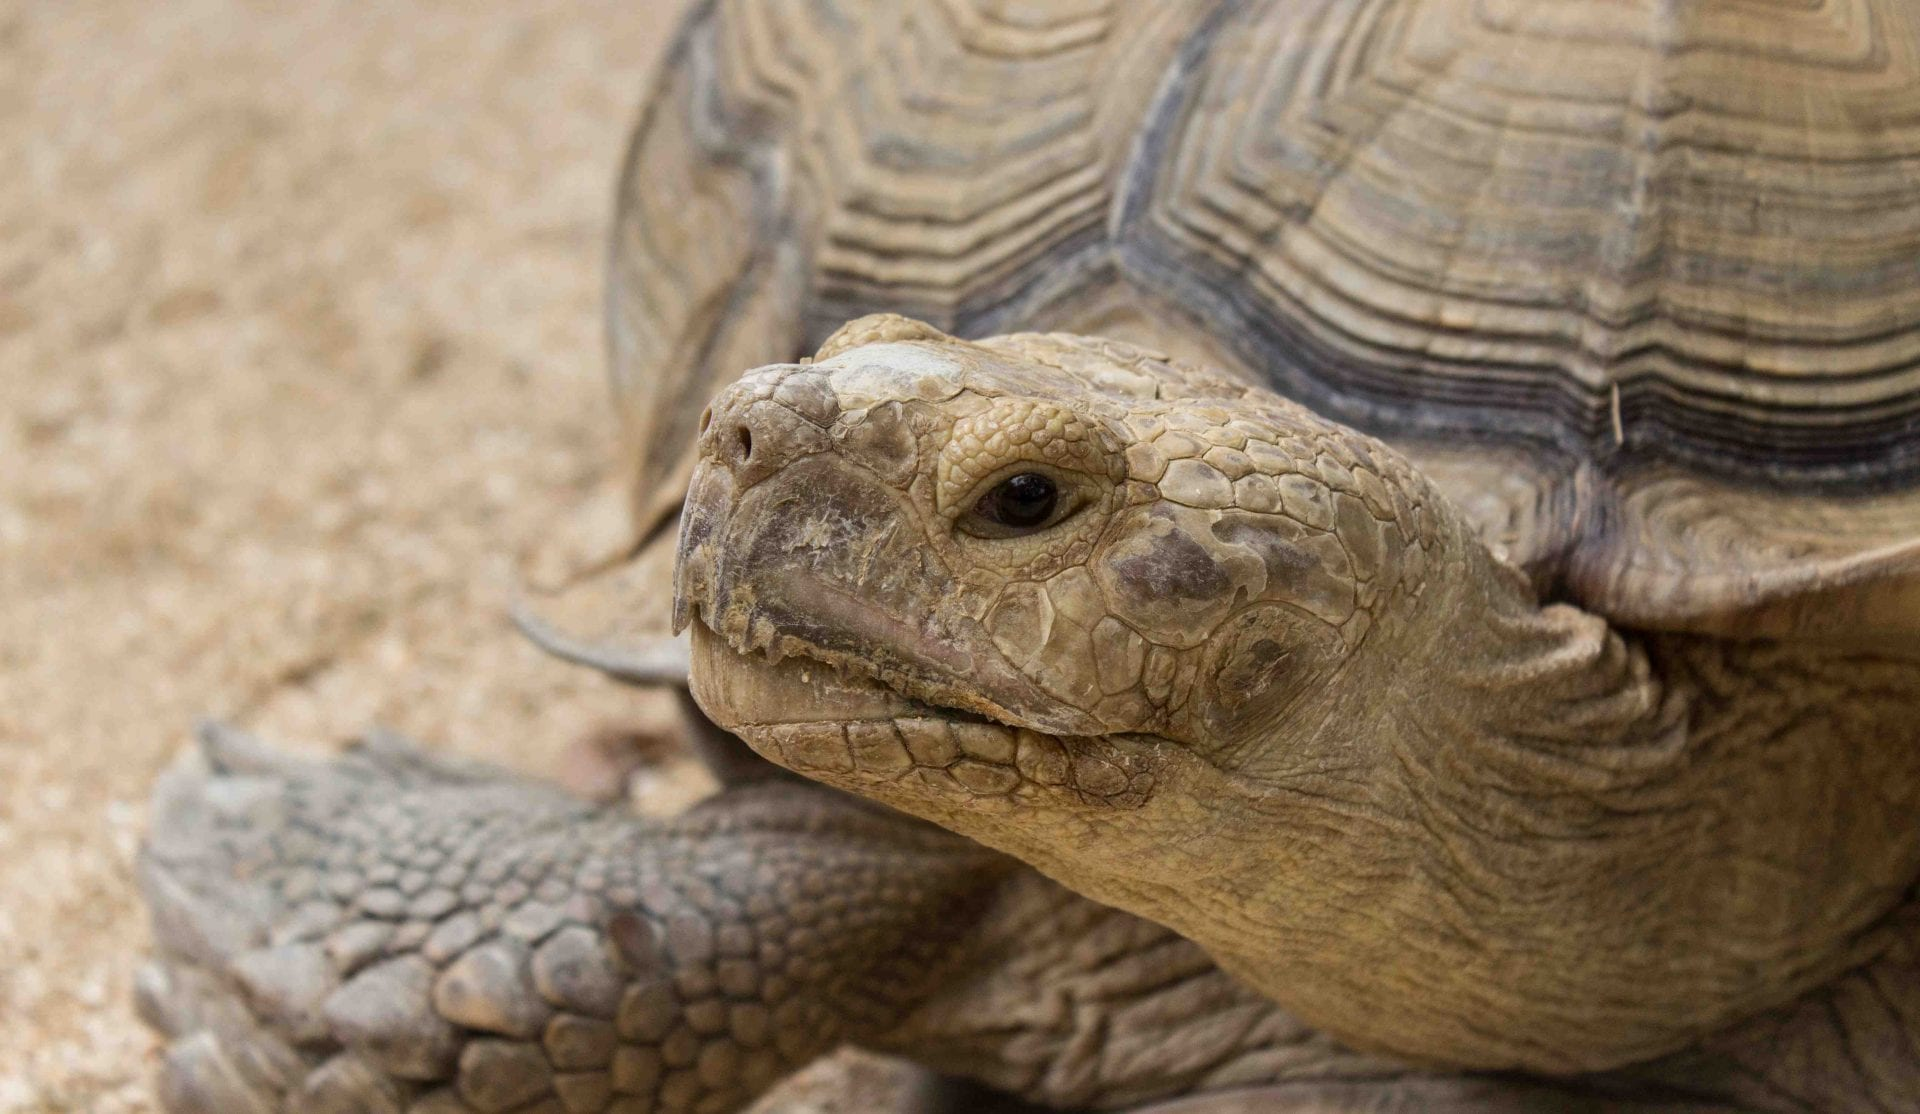 Close up of tortoise